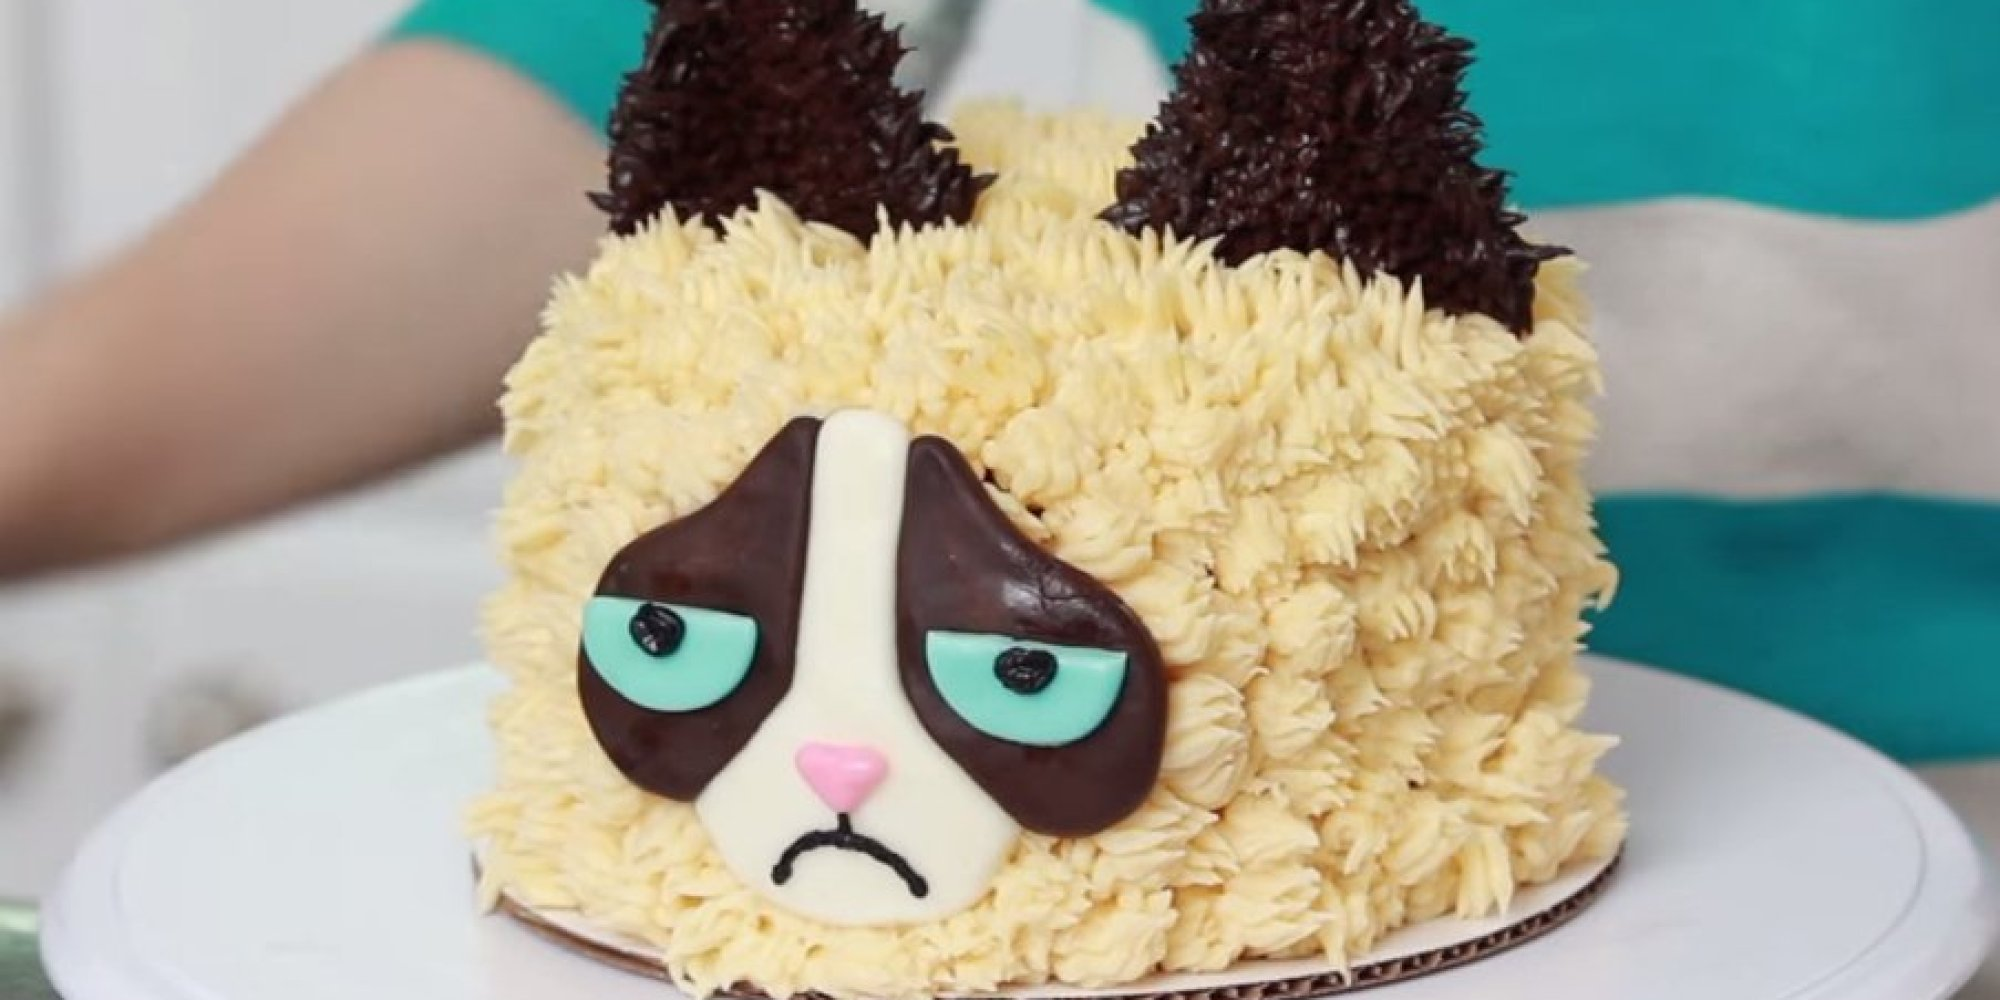 Grumpy Cat Cake Design : Grumpy Cat Makeup Cake Ideas and Designs